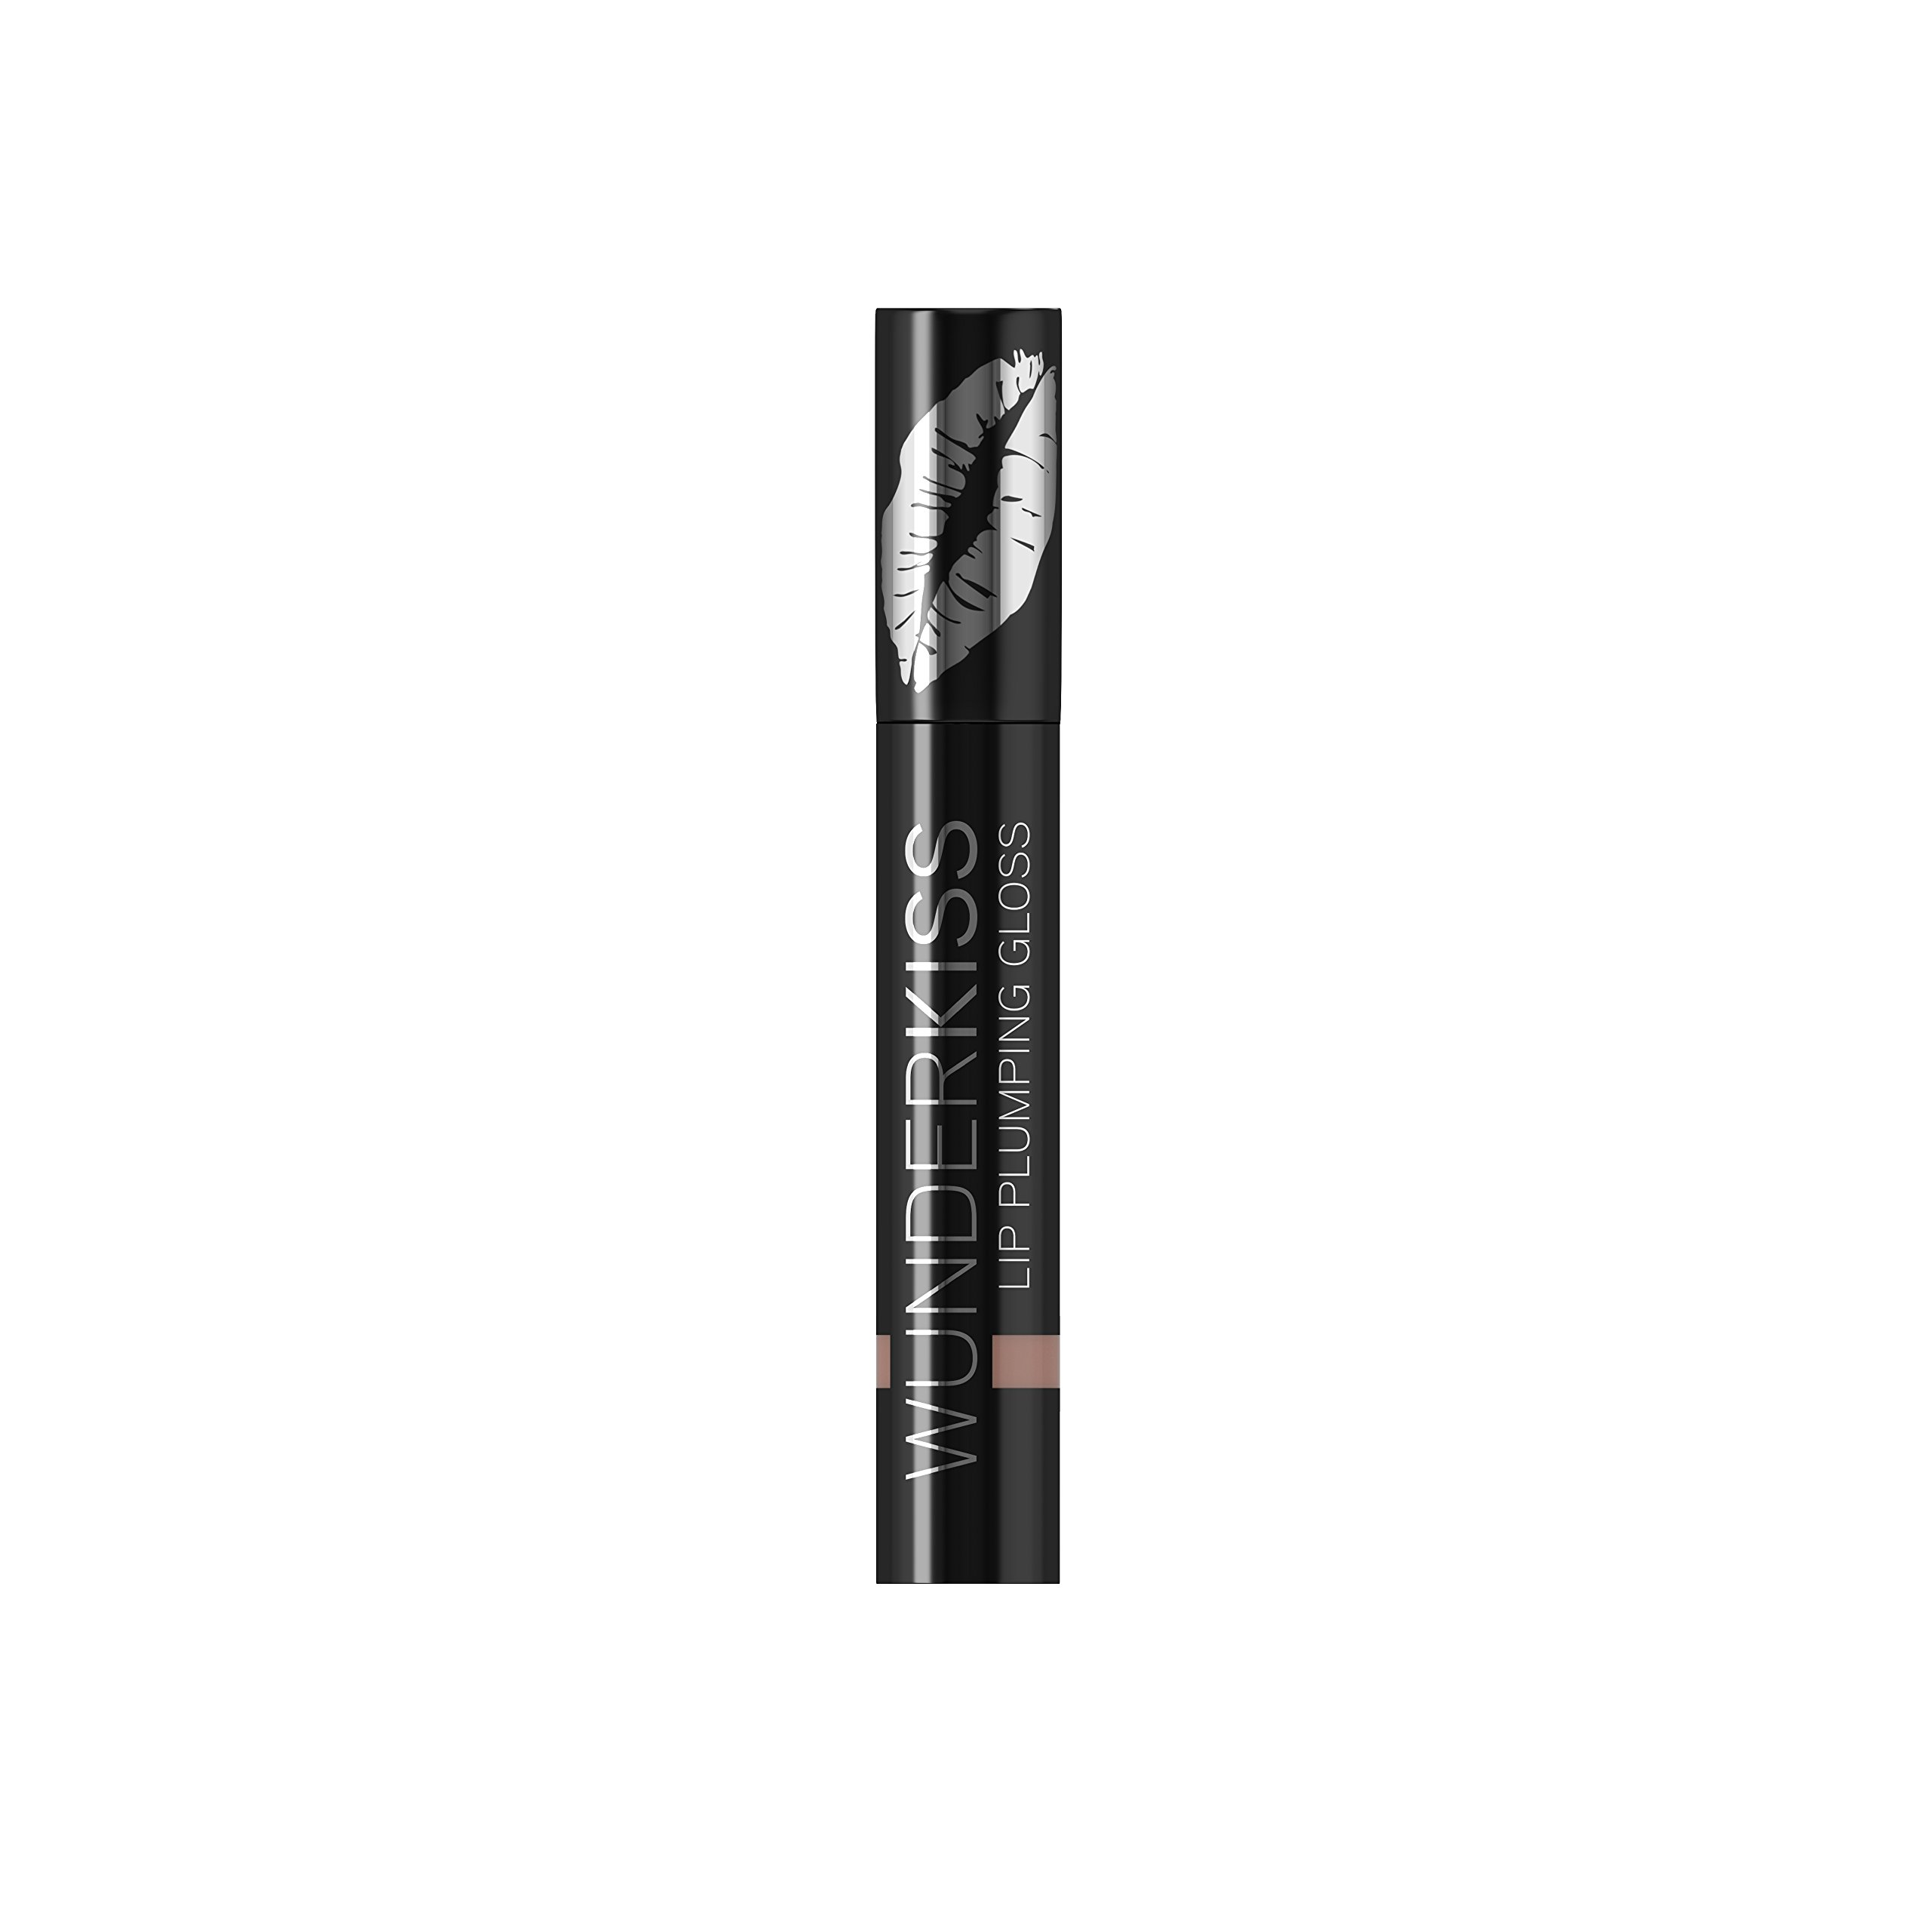 WUNDER2 WUNDERKISS Plumping Lip Gloss - Lip Plumper for Hydrated & Voluminous Lips, Nude Color by Wunder2